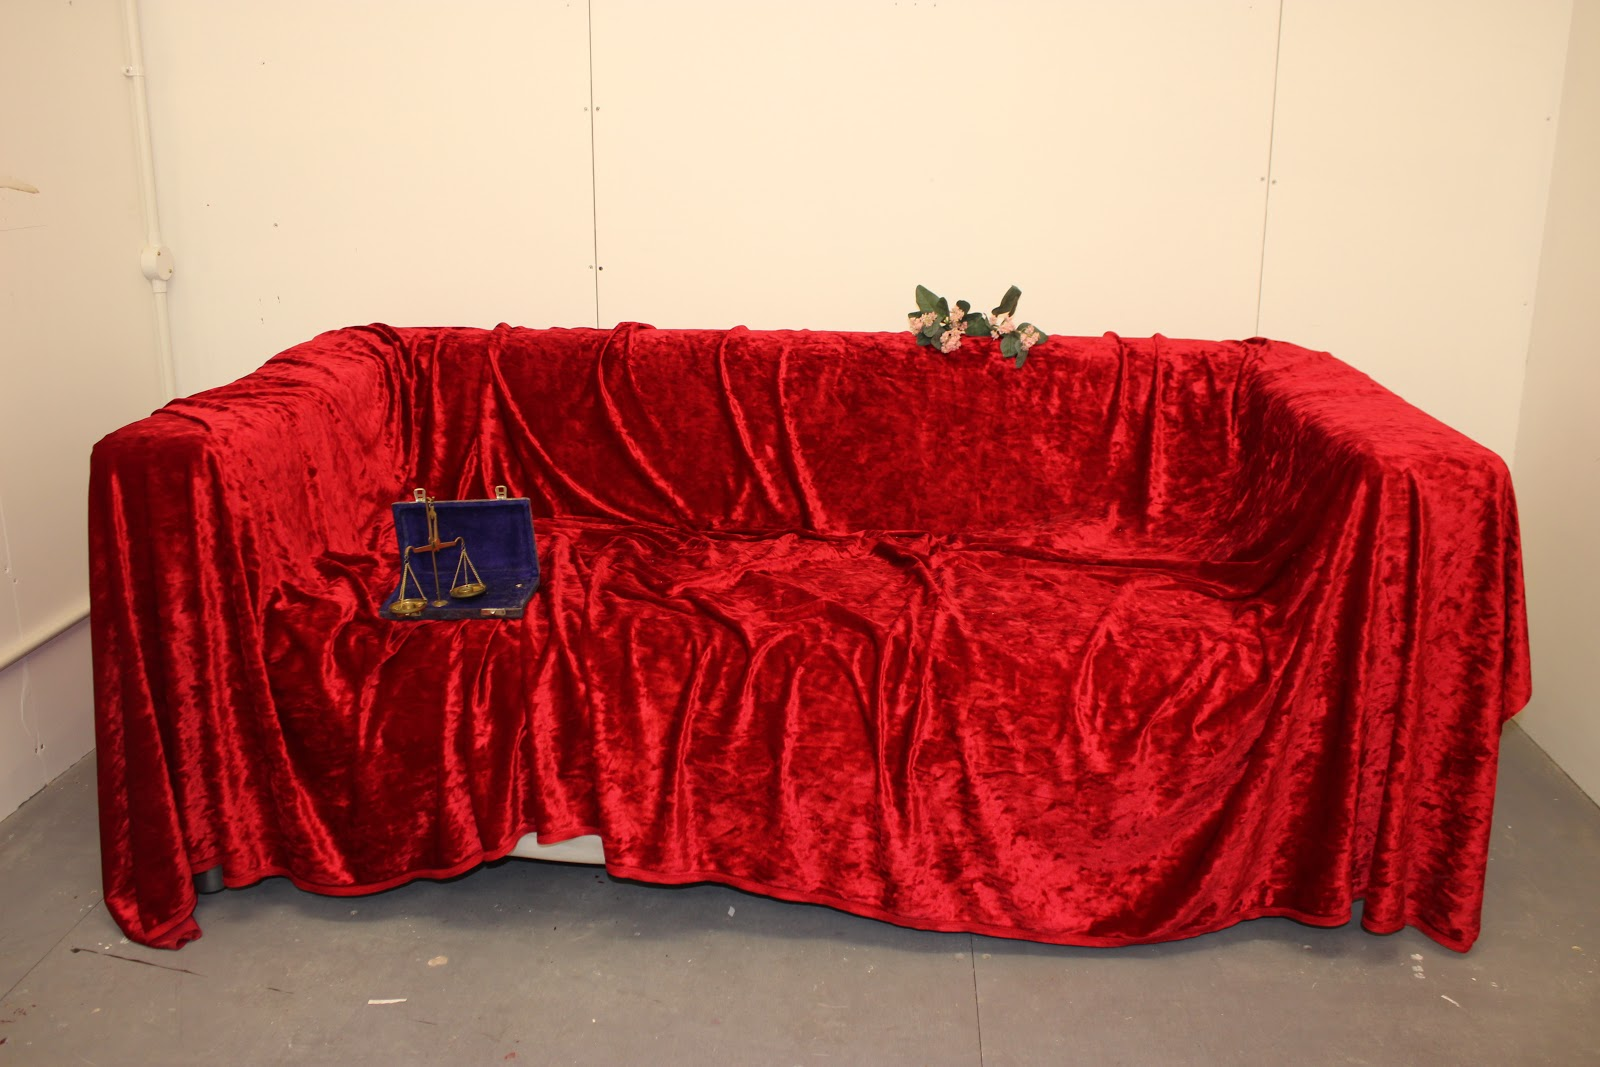 The red sofa where J takes her naked photos